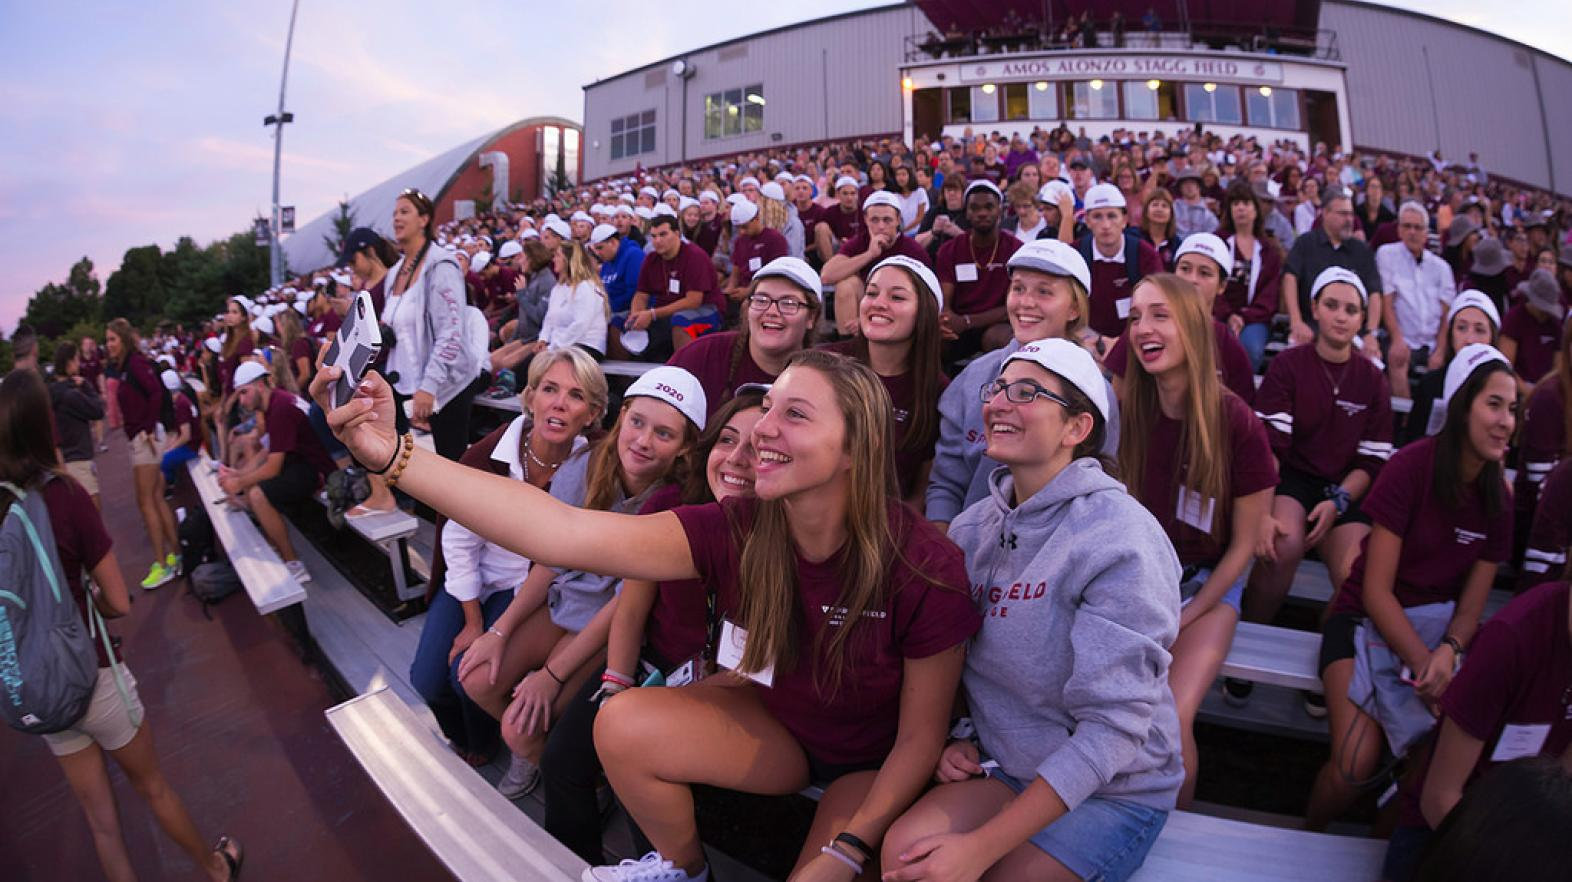 Students take a selfie at a Springfield College football game